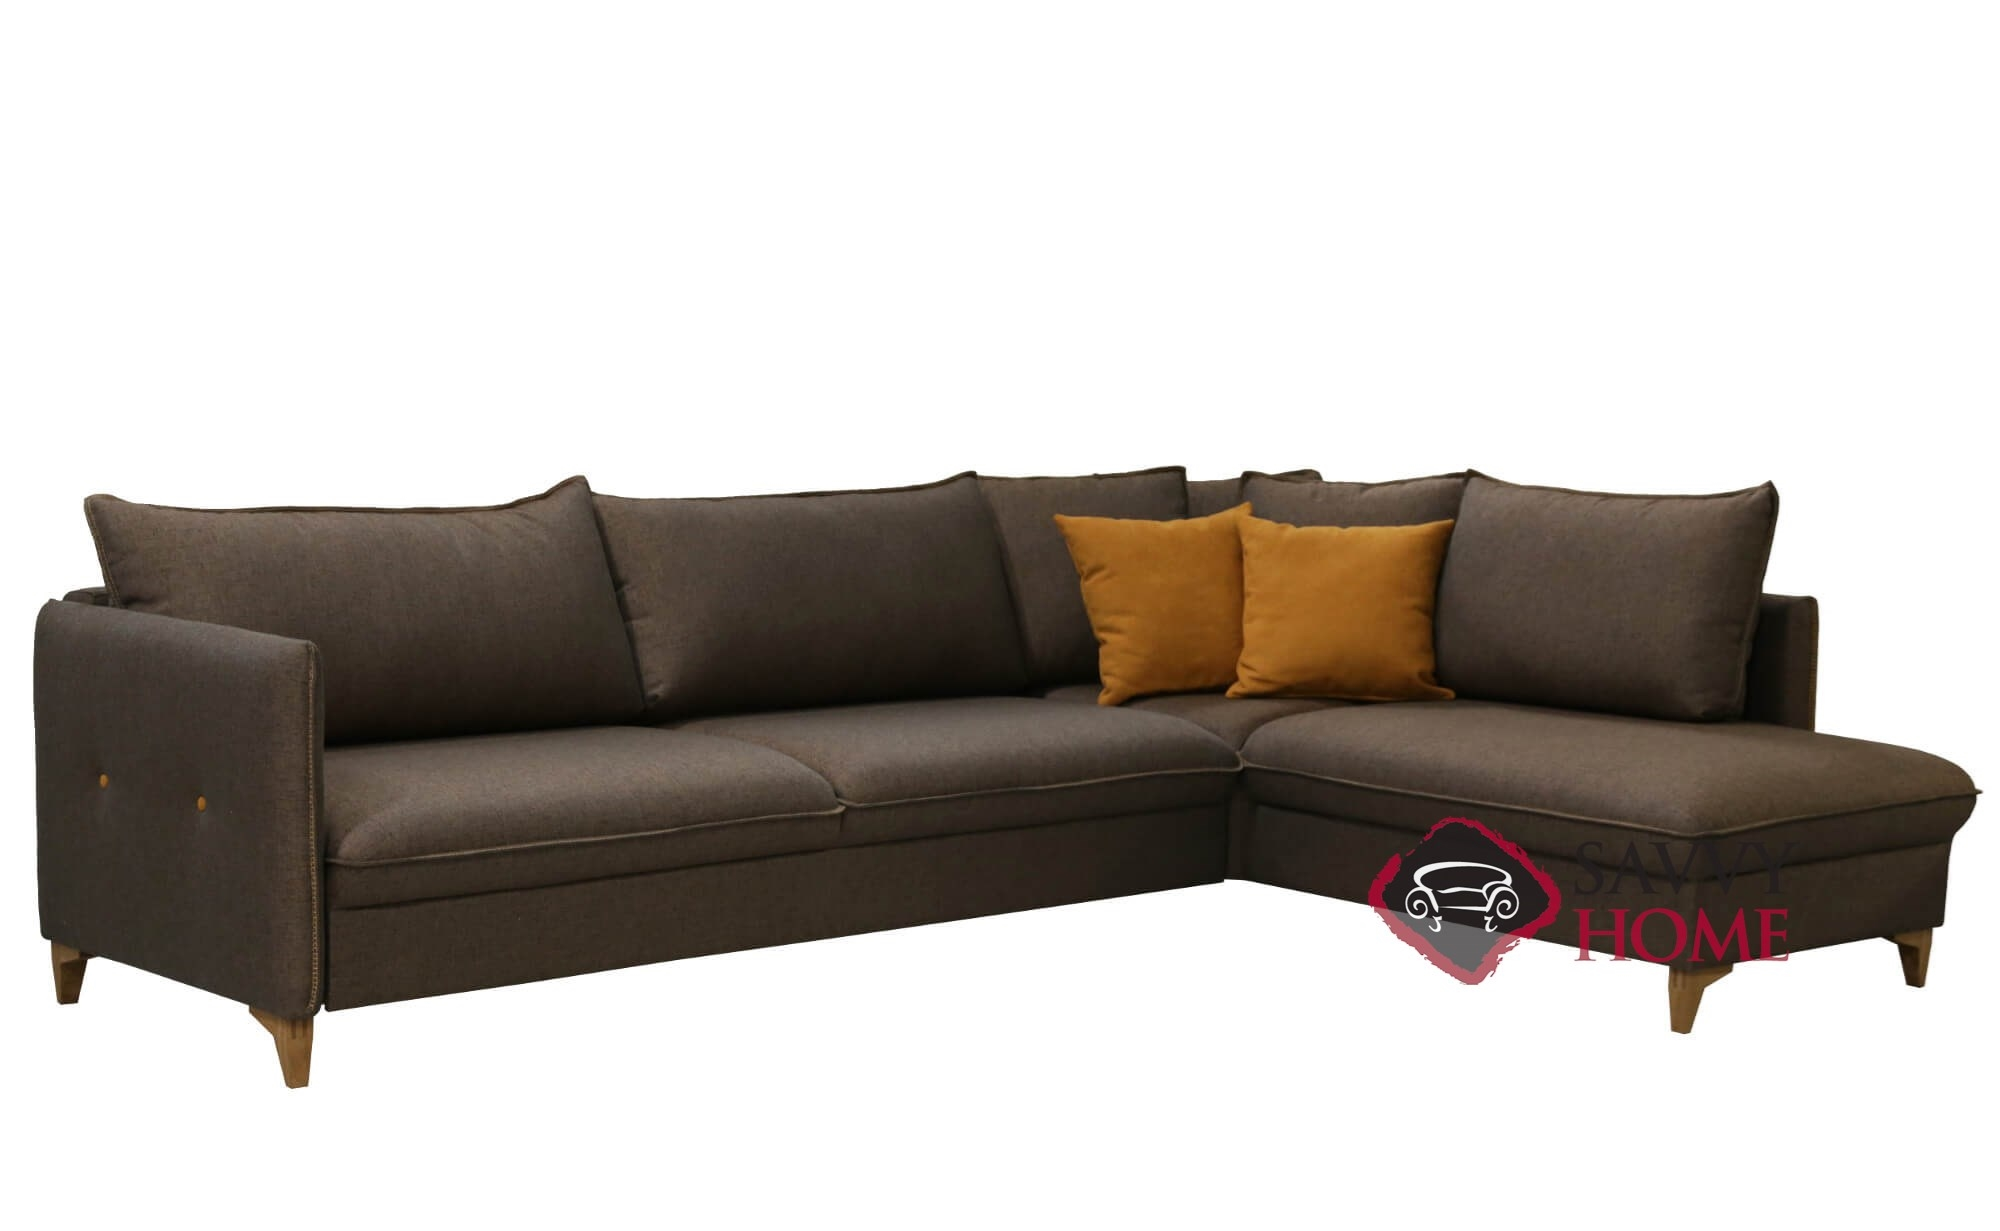 Pepper Chaise Sectional Full Sofa Bed By Luonto